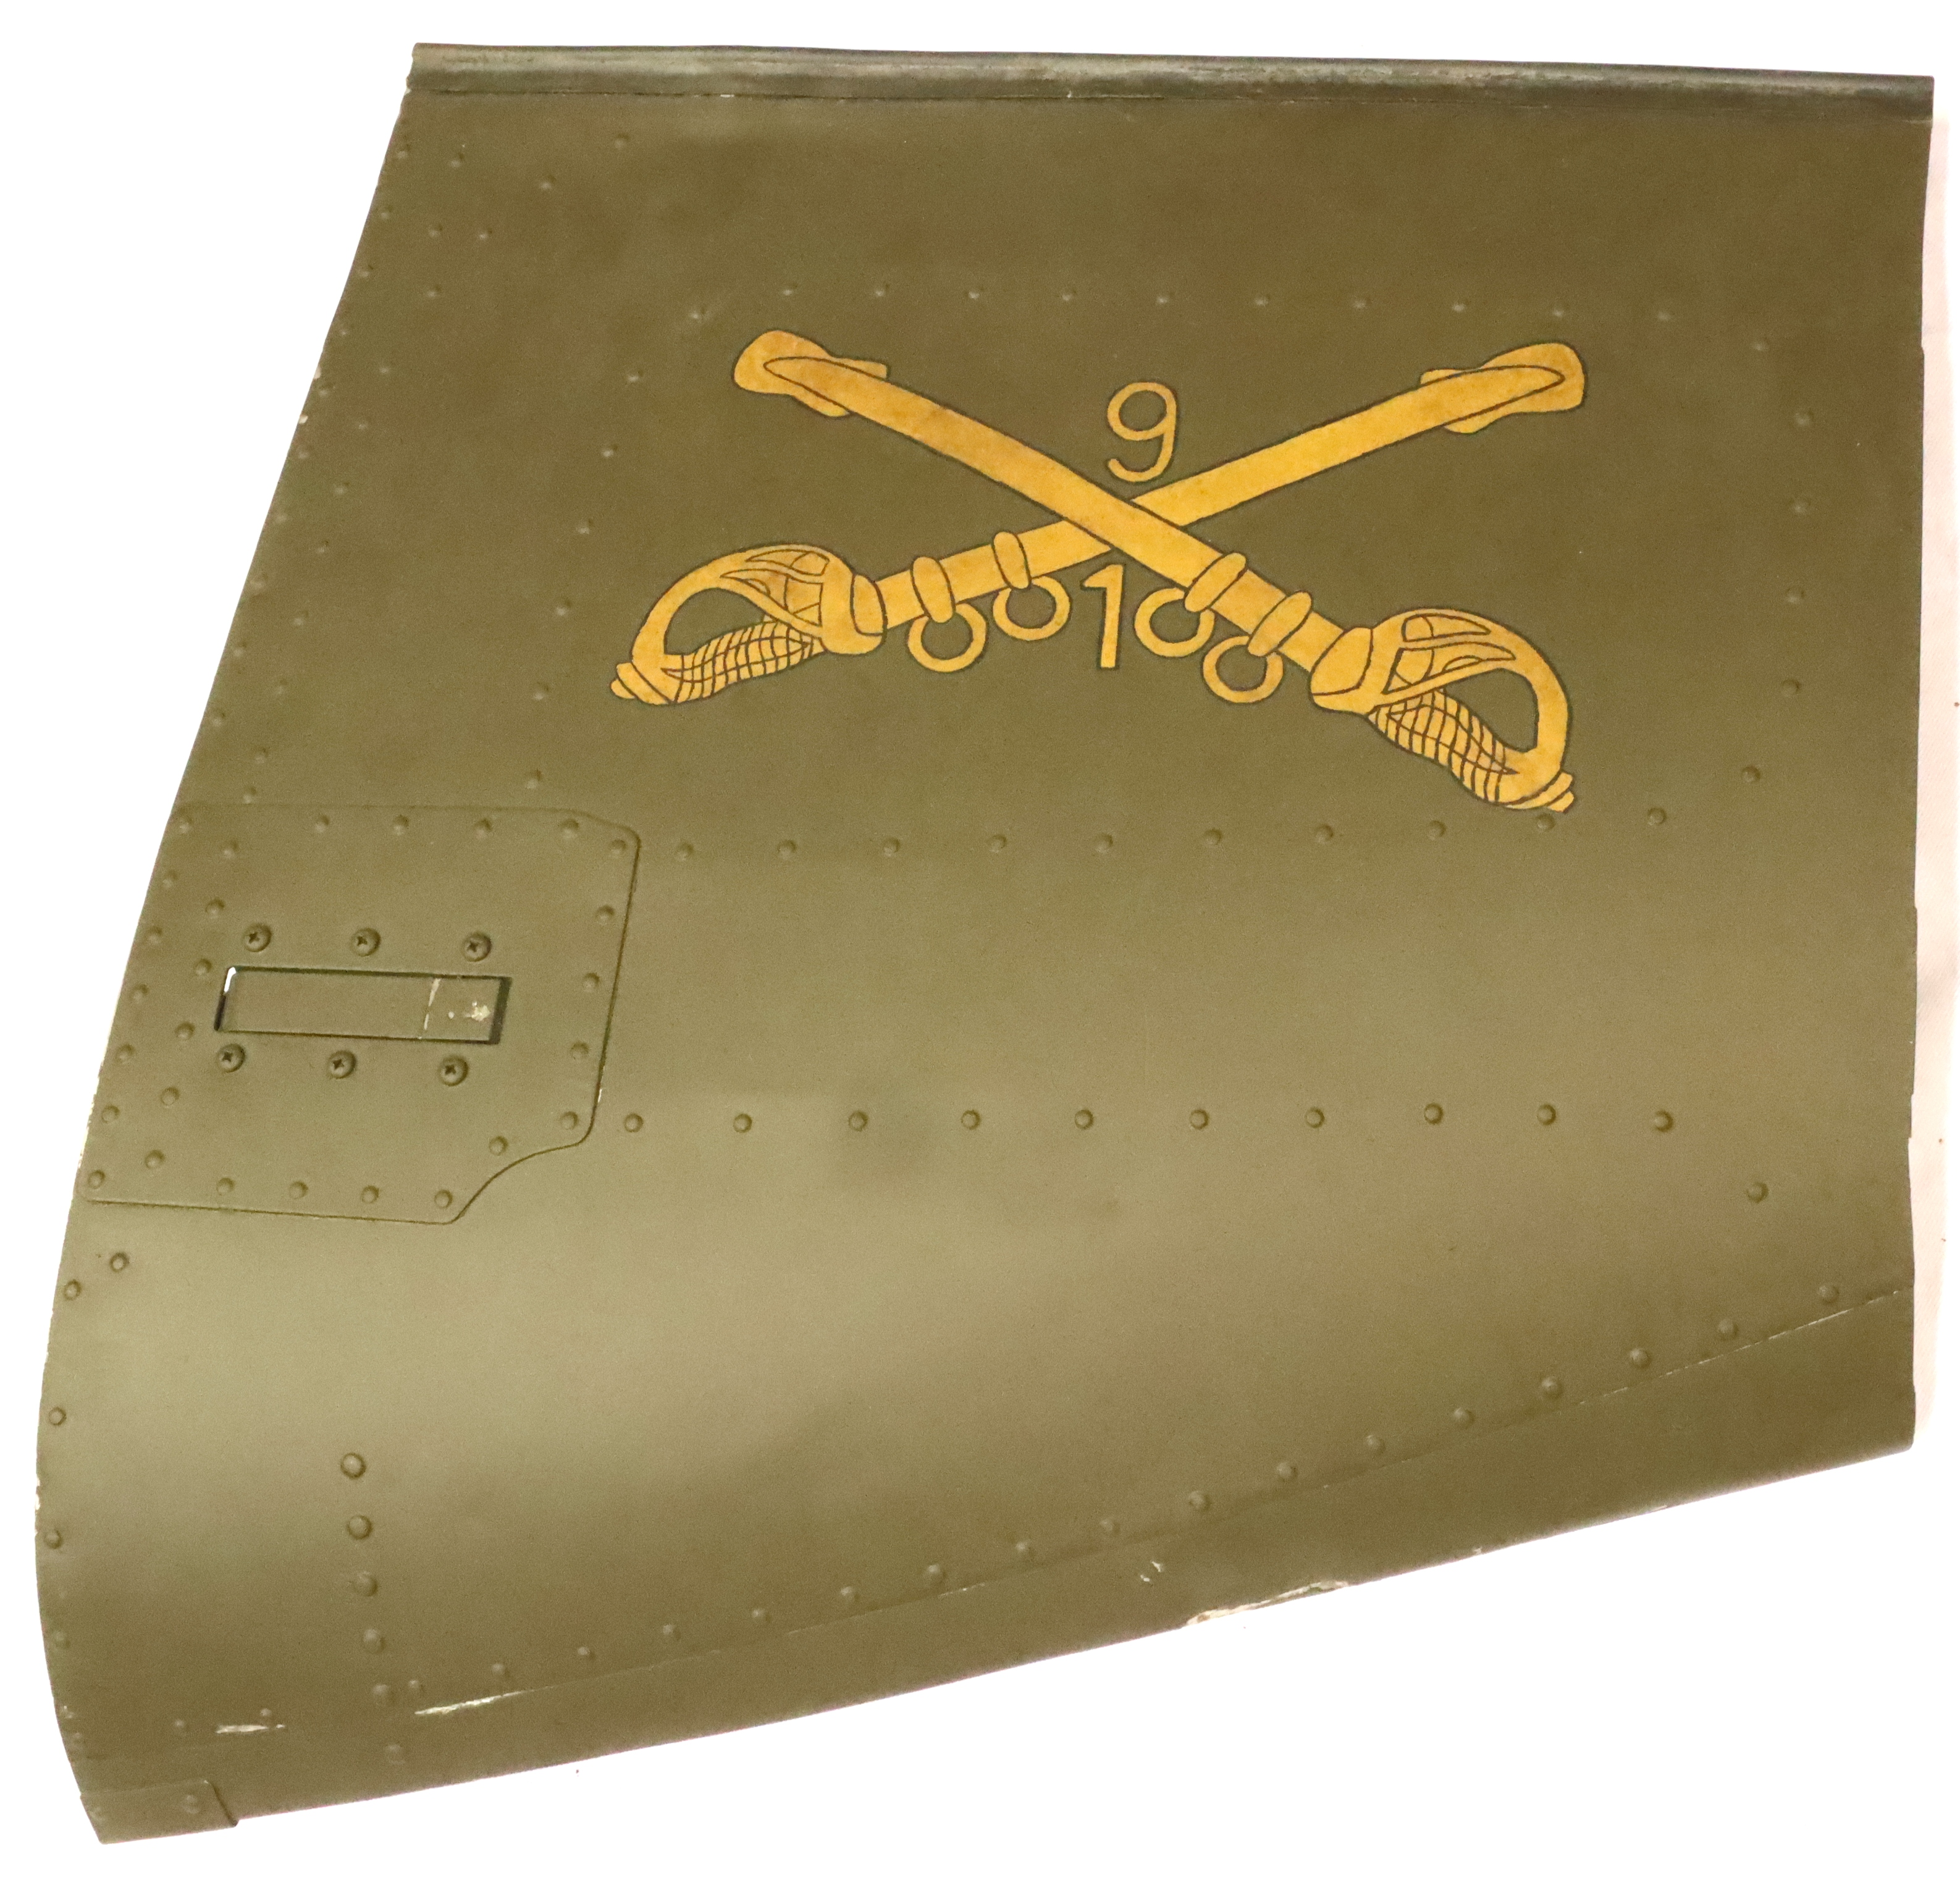 Vietnam War Era. Genuine Bell Huey UH-1 Helicopter Fragment. This came from a bar in Ho Chi Minh